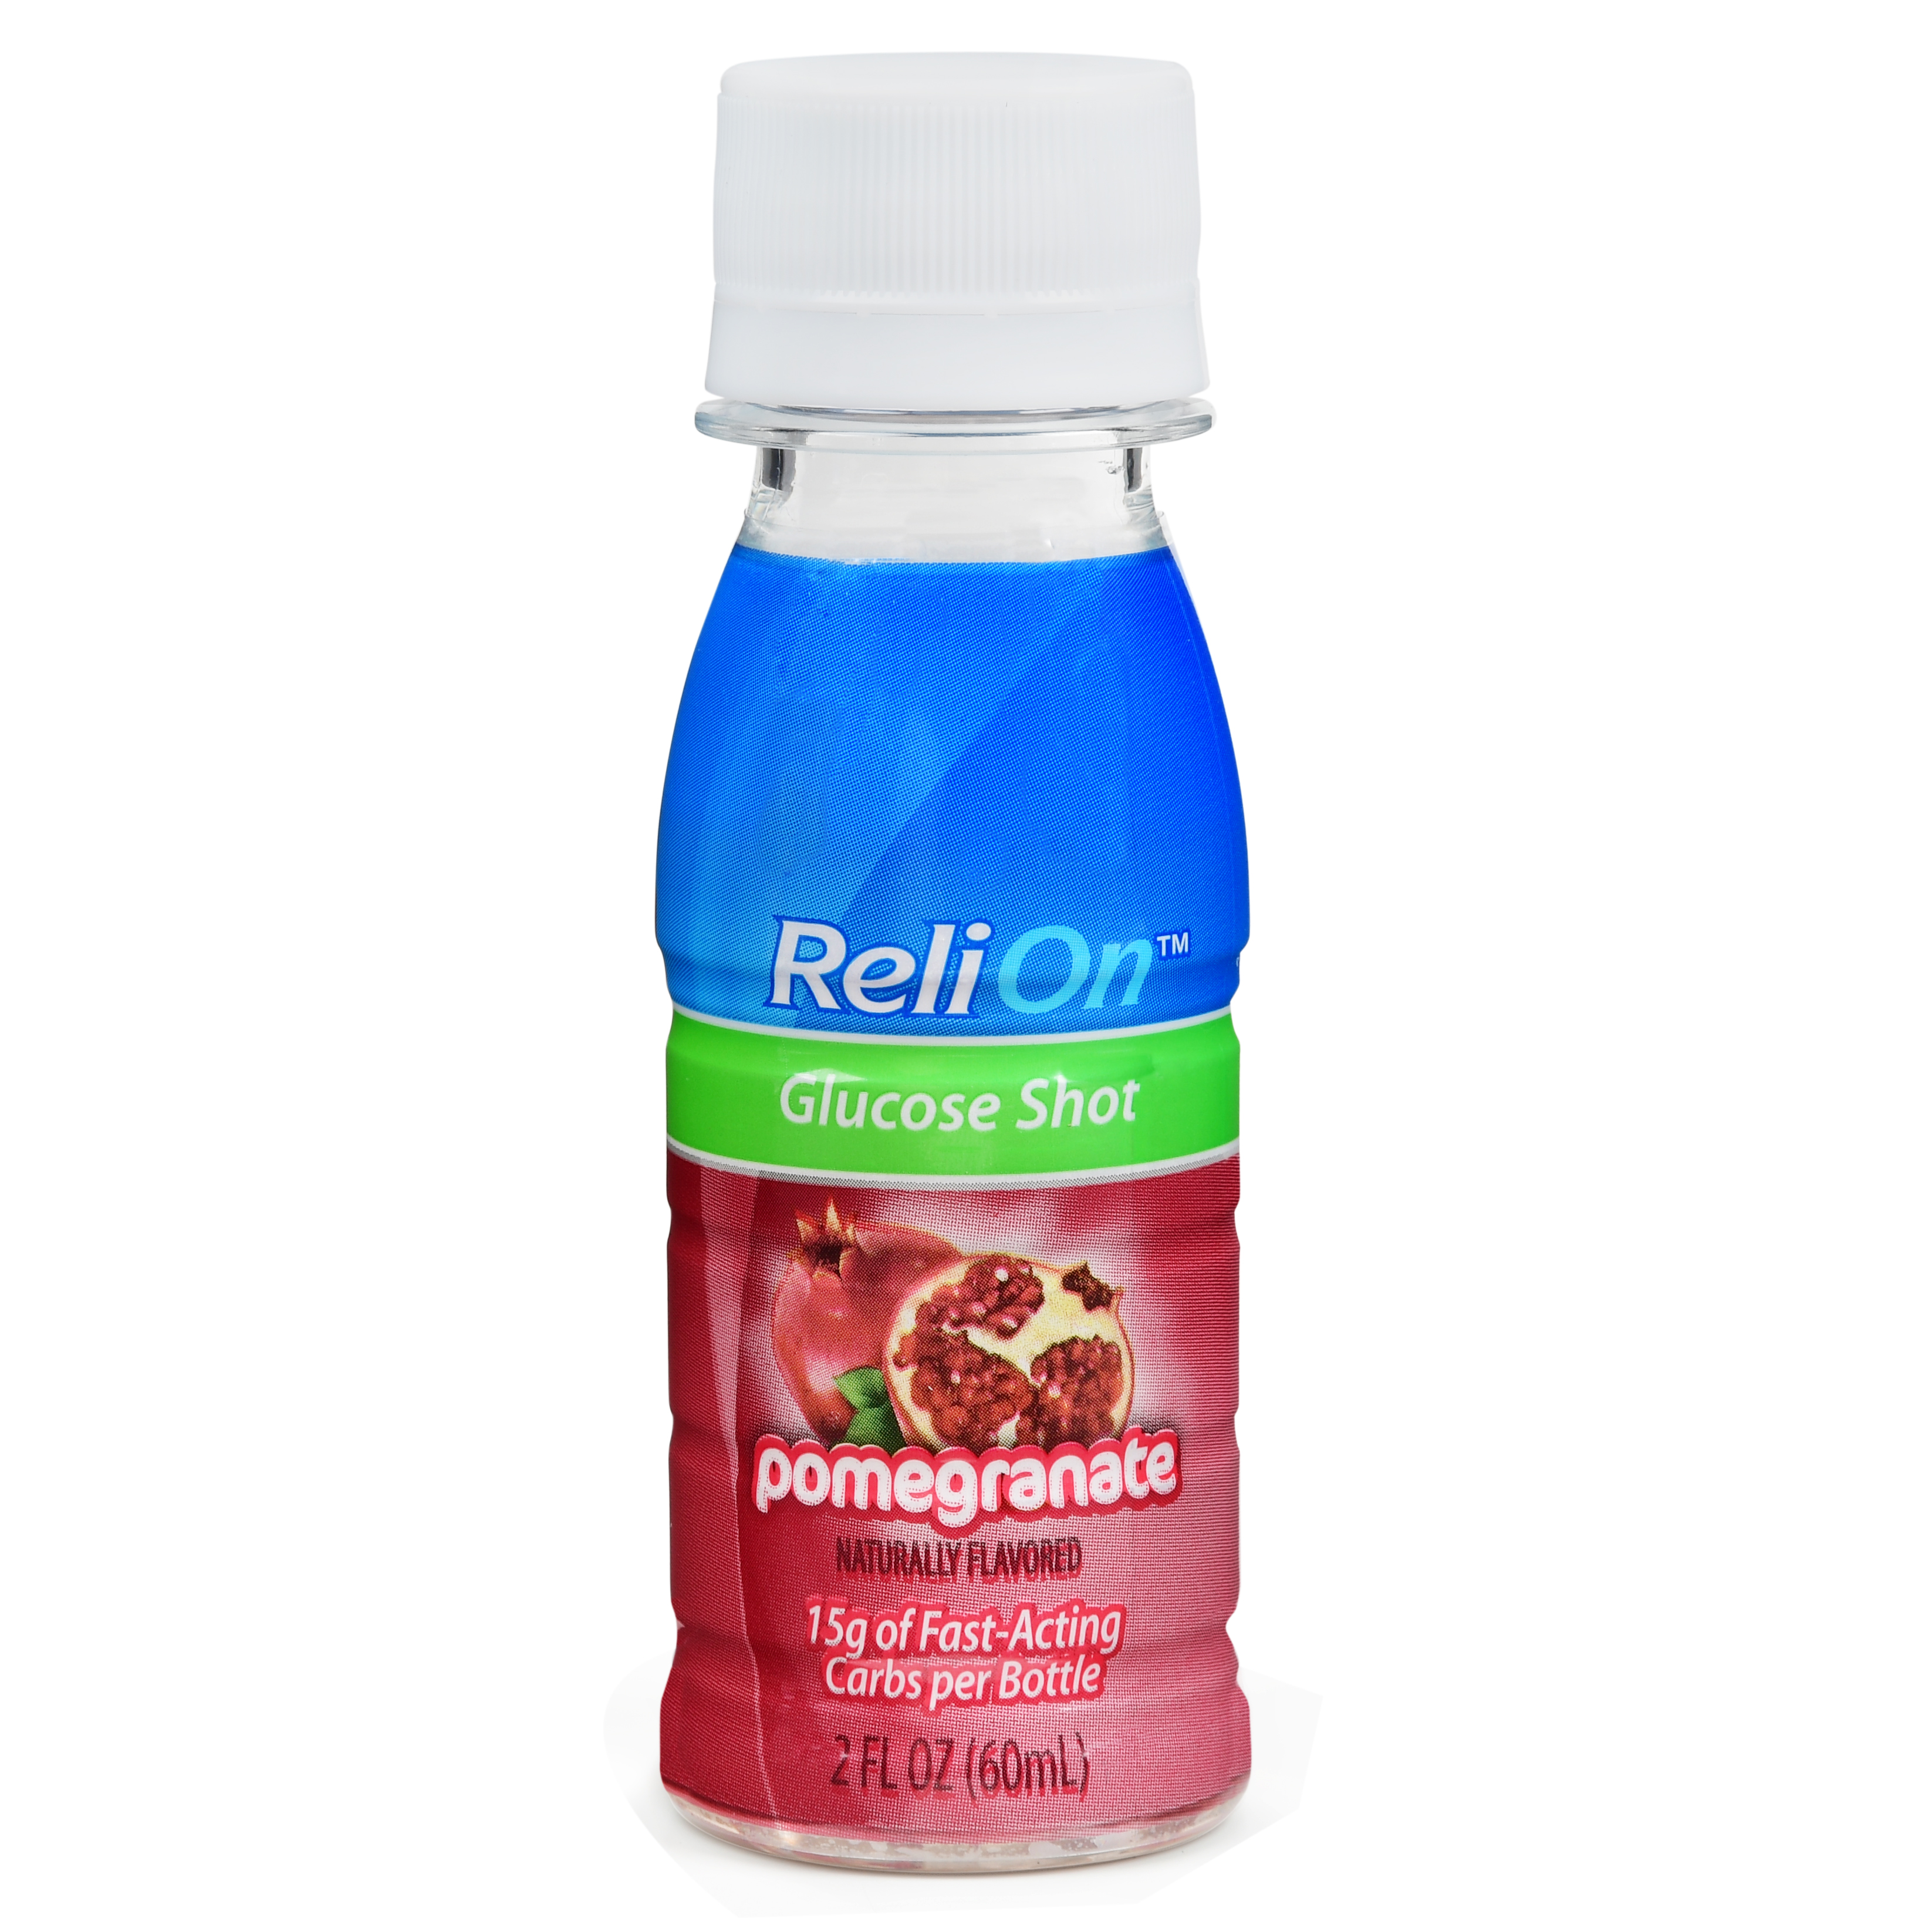 ReliOn Pomegranate Glucose Shot, 2 Oz